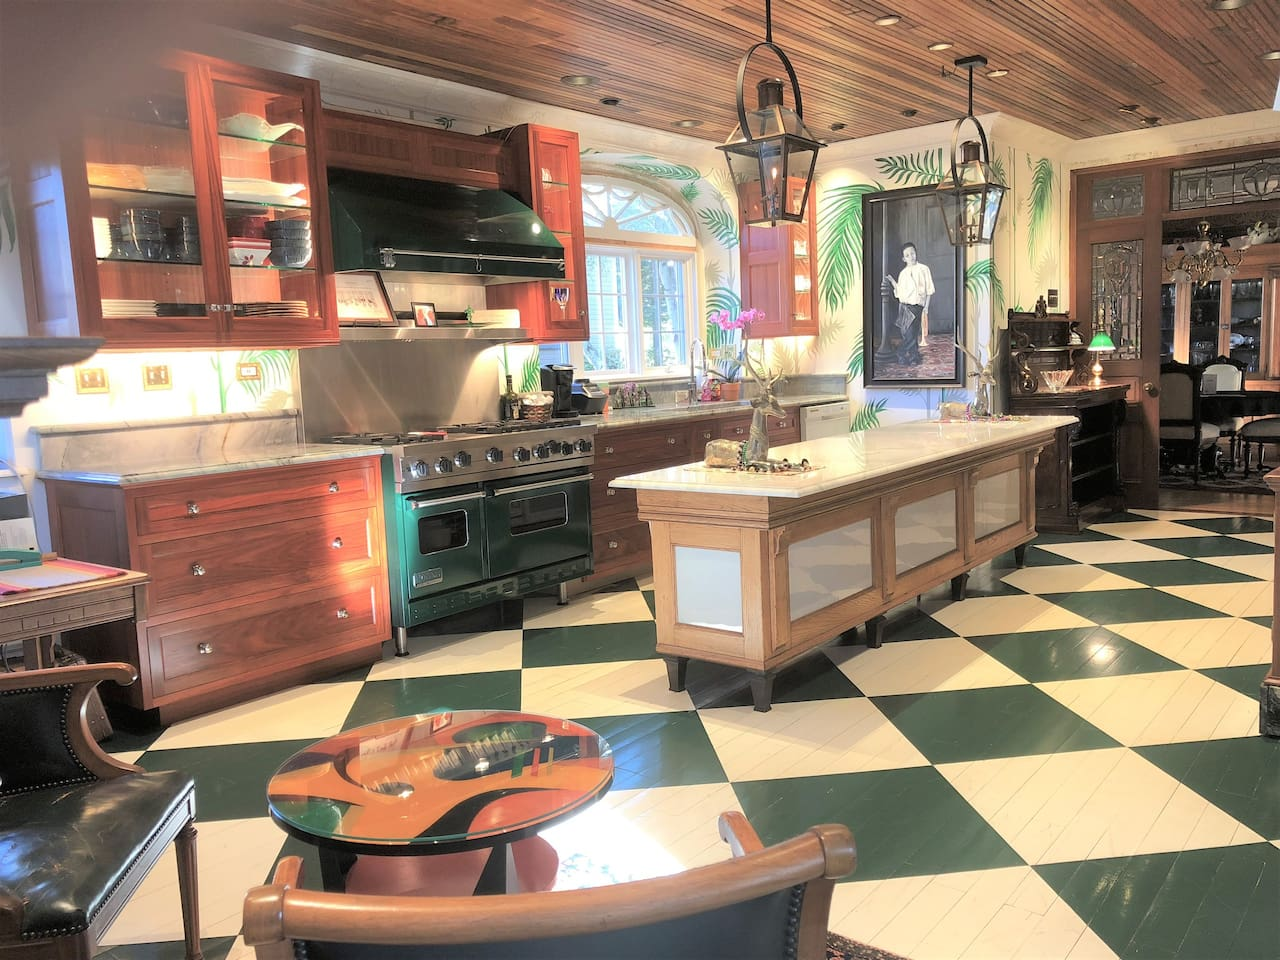 Relax in this amazing cook's kitchen